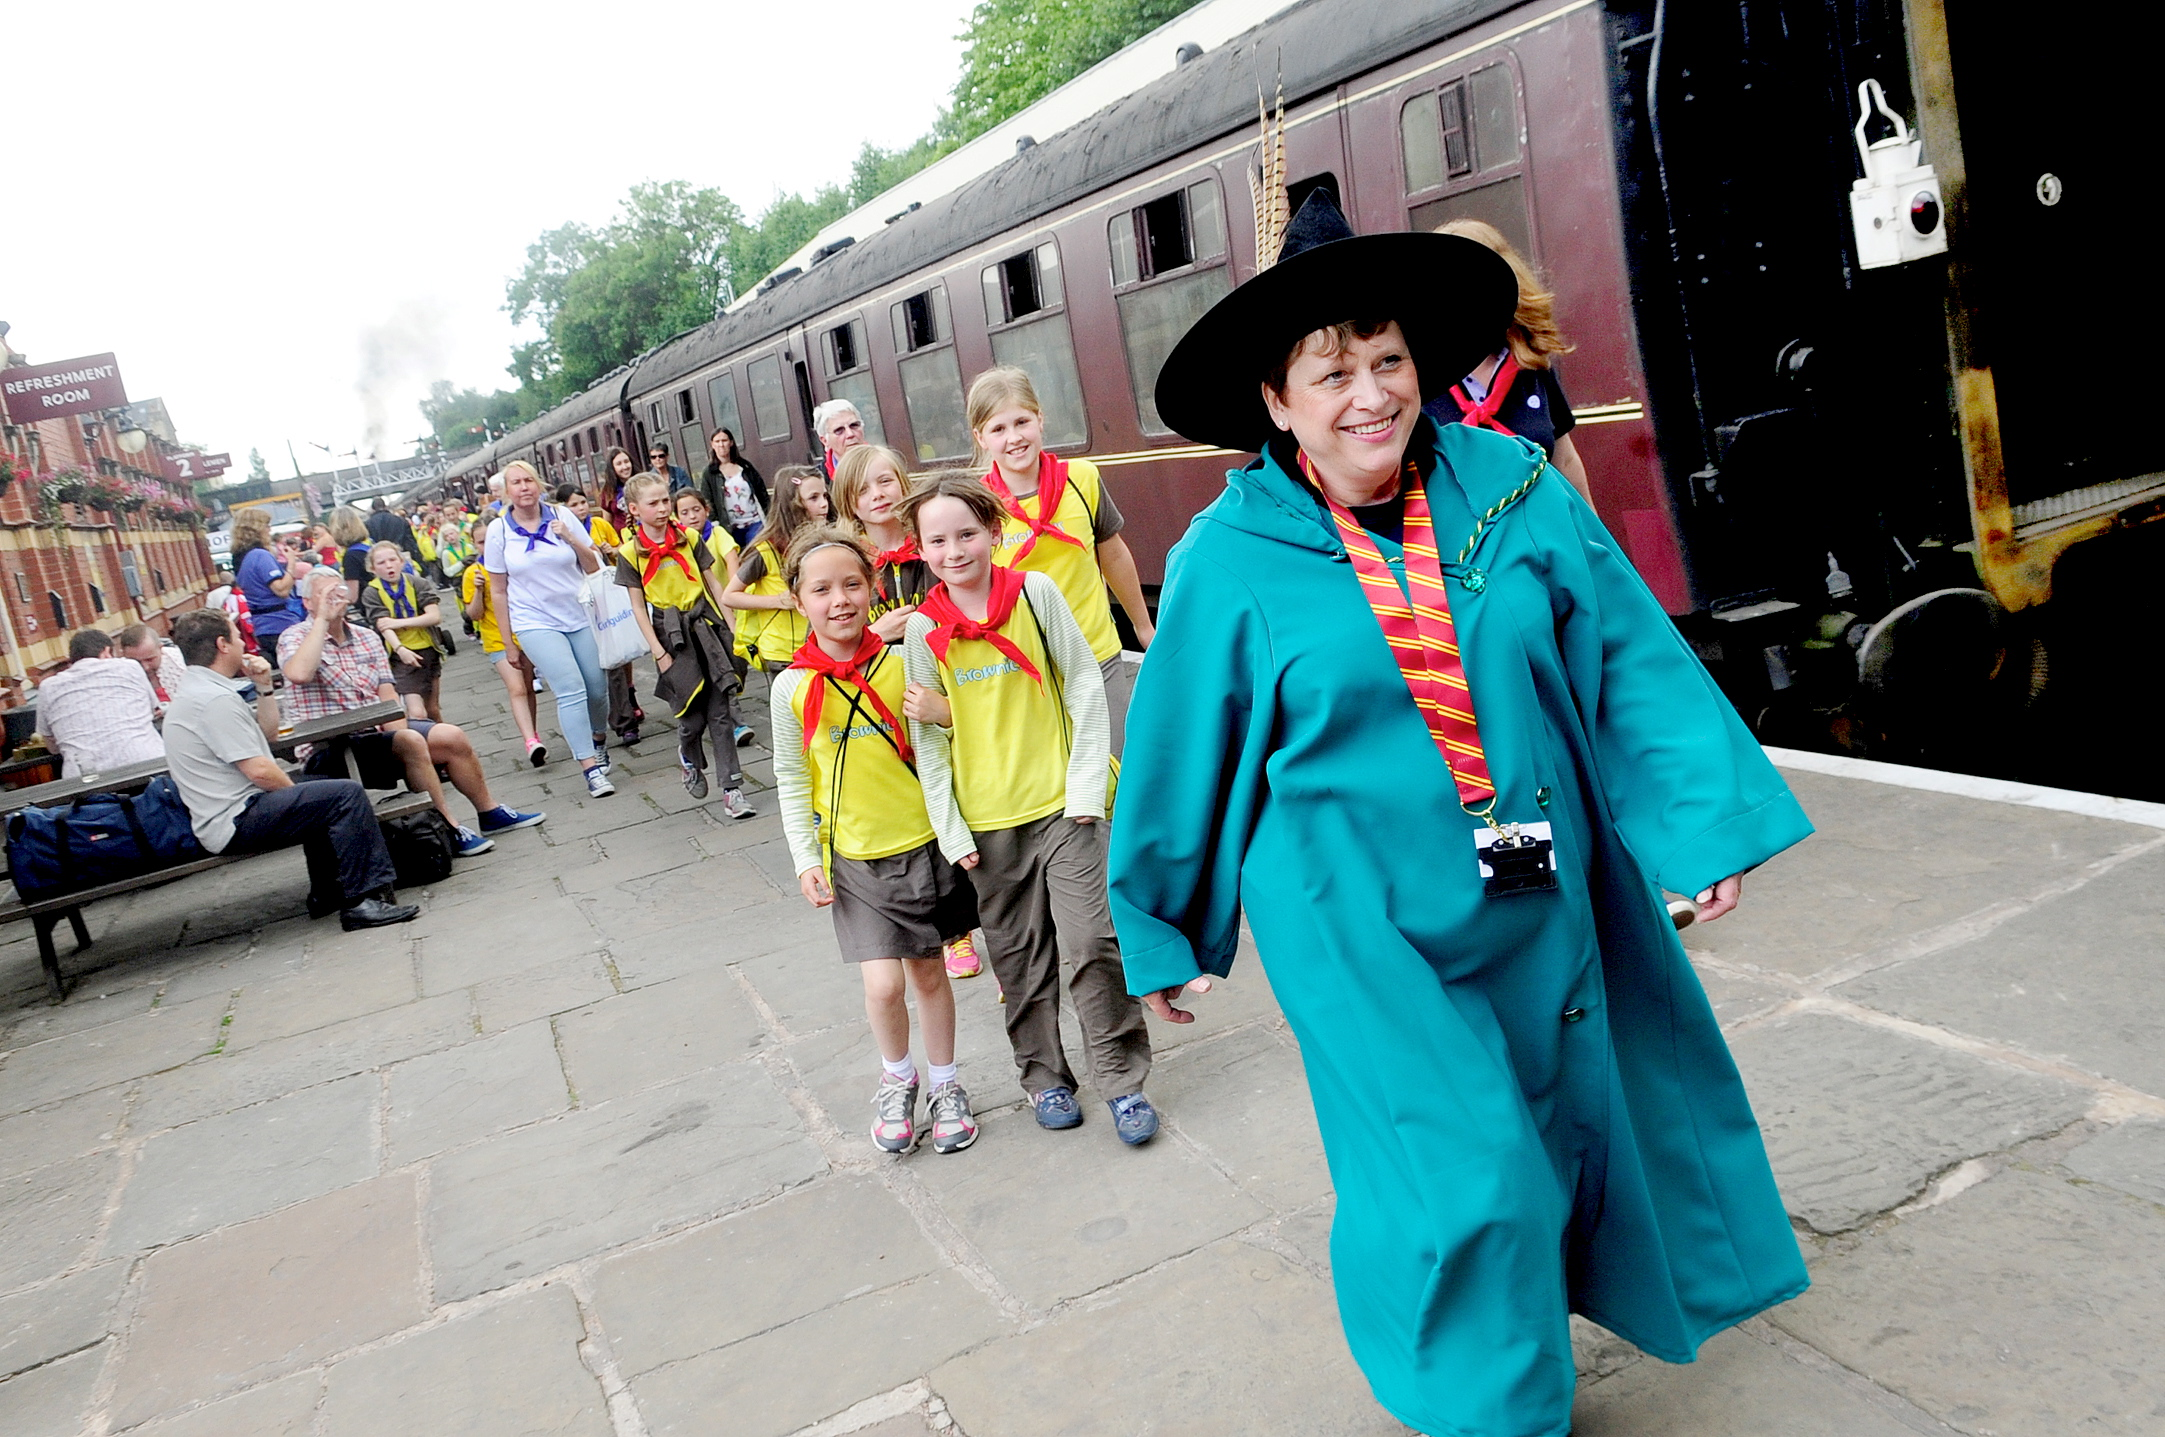 East Lancashire Railway turned into Hogwarts for the day